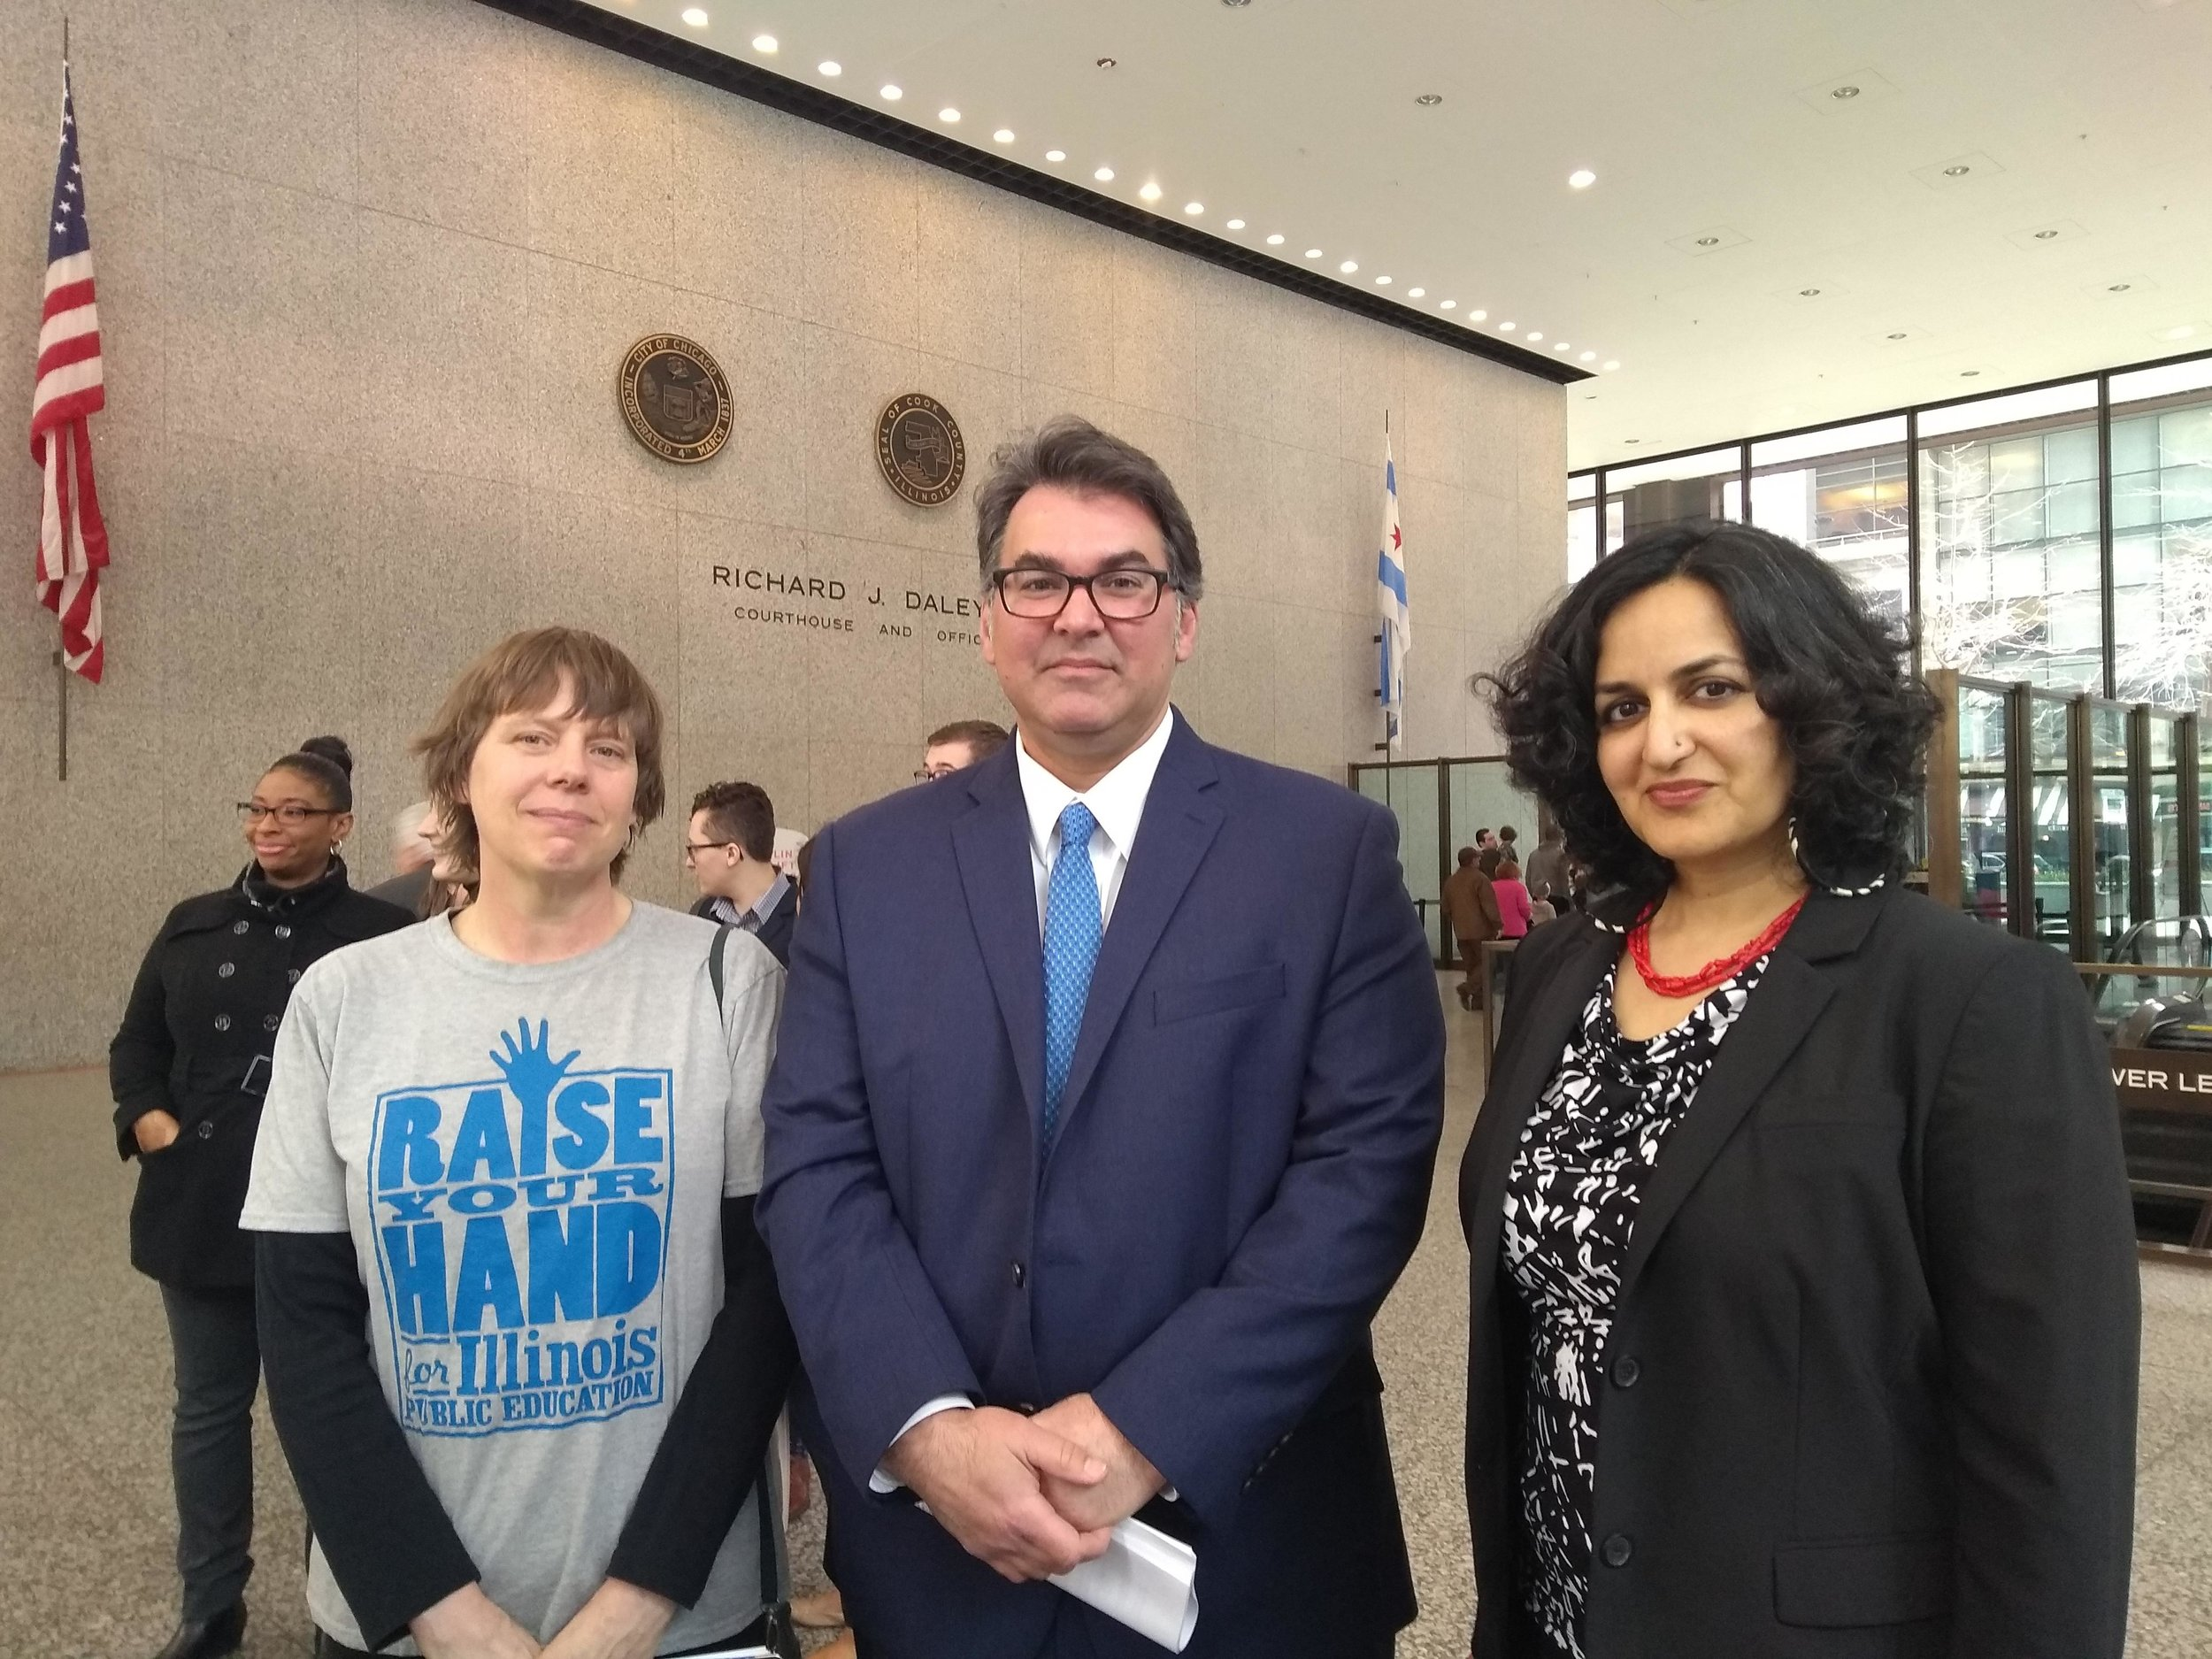 Left to right: Joy Clendenning of Raise Your Hand, Aneel Chablani of Chicago Lawyers' Committee, and Amisha Patel of Grassroots Collaborative on the morning of the lawsuit's court filing.